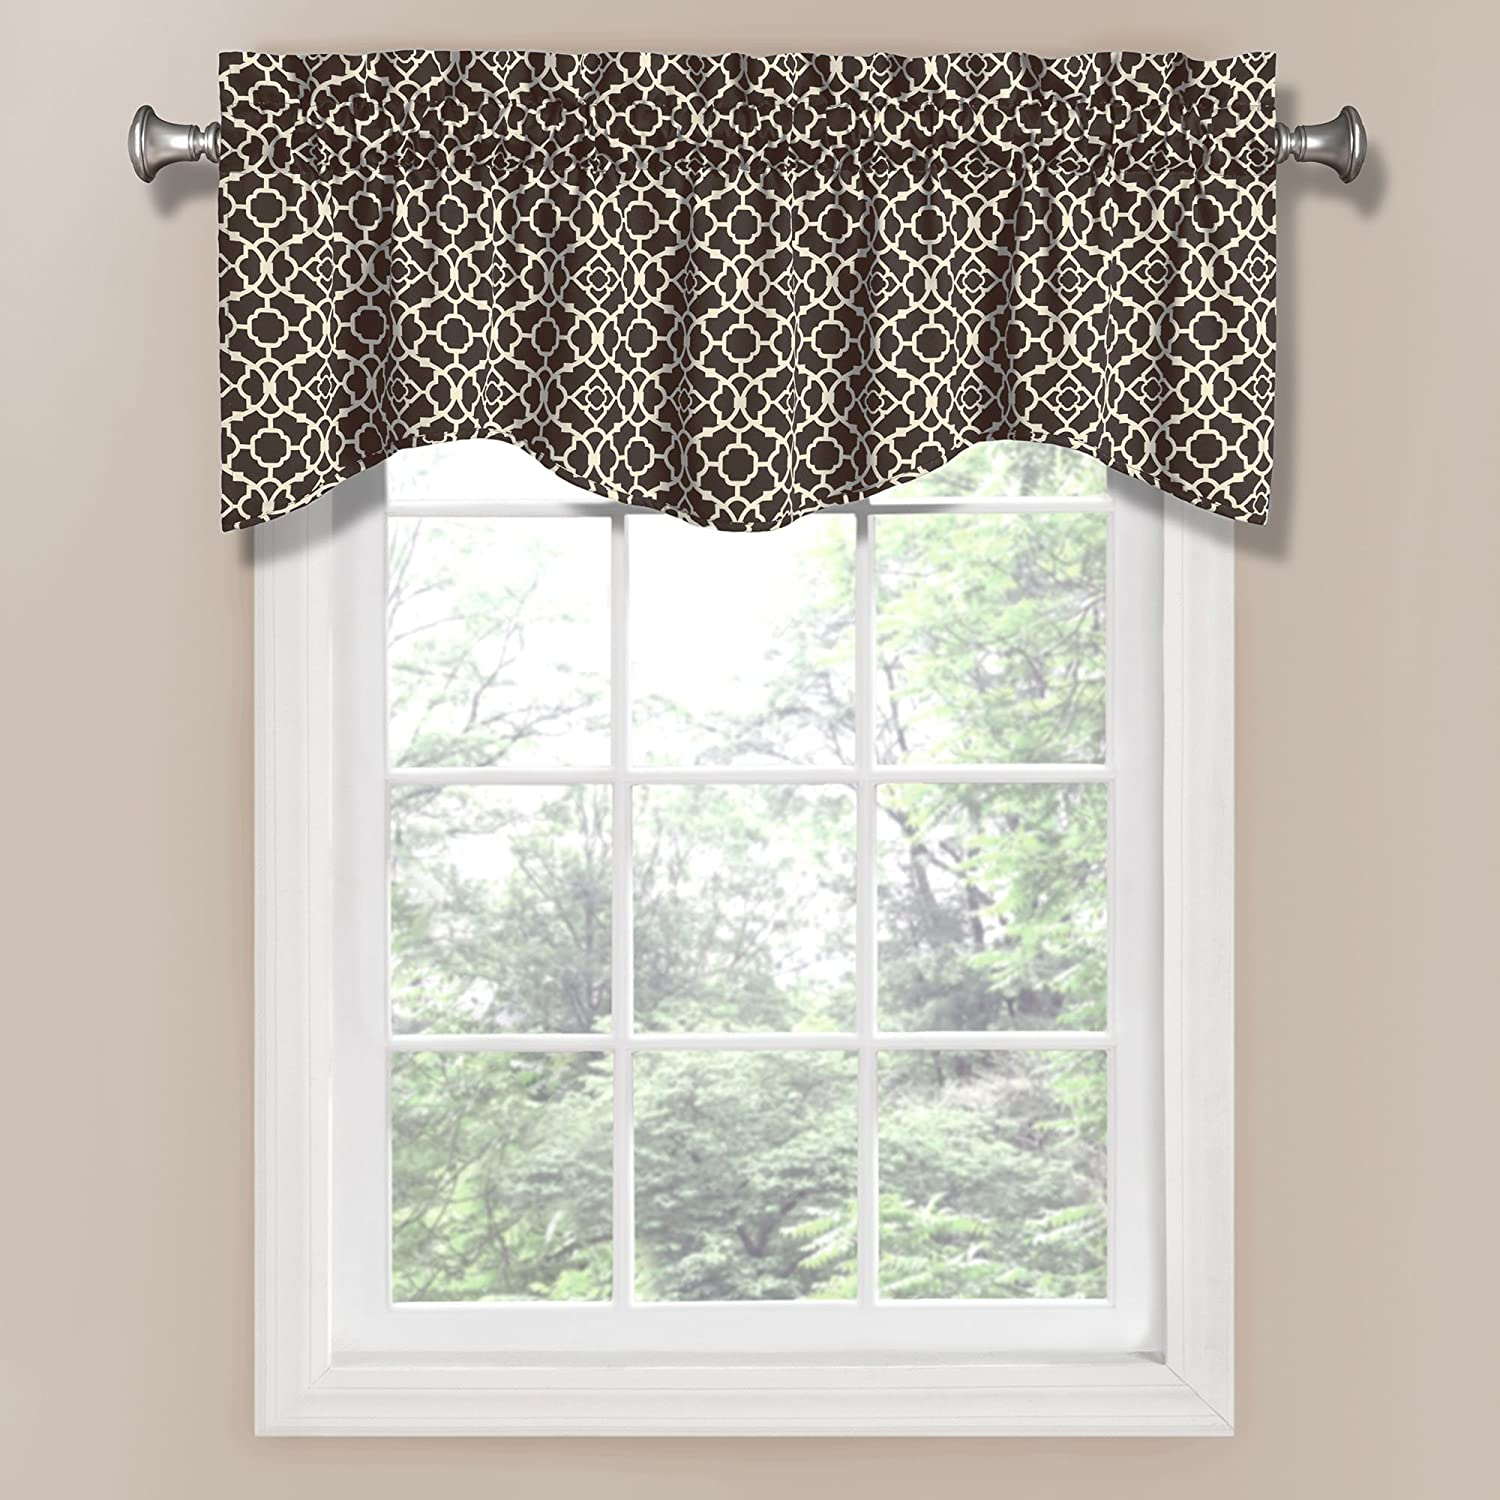 Elegant Kitchen Curtains Valances: Waverly Lovely Lattice Valance, Onyx , New, Free Shipping